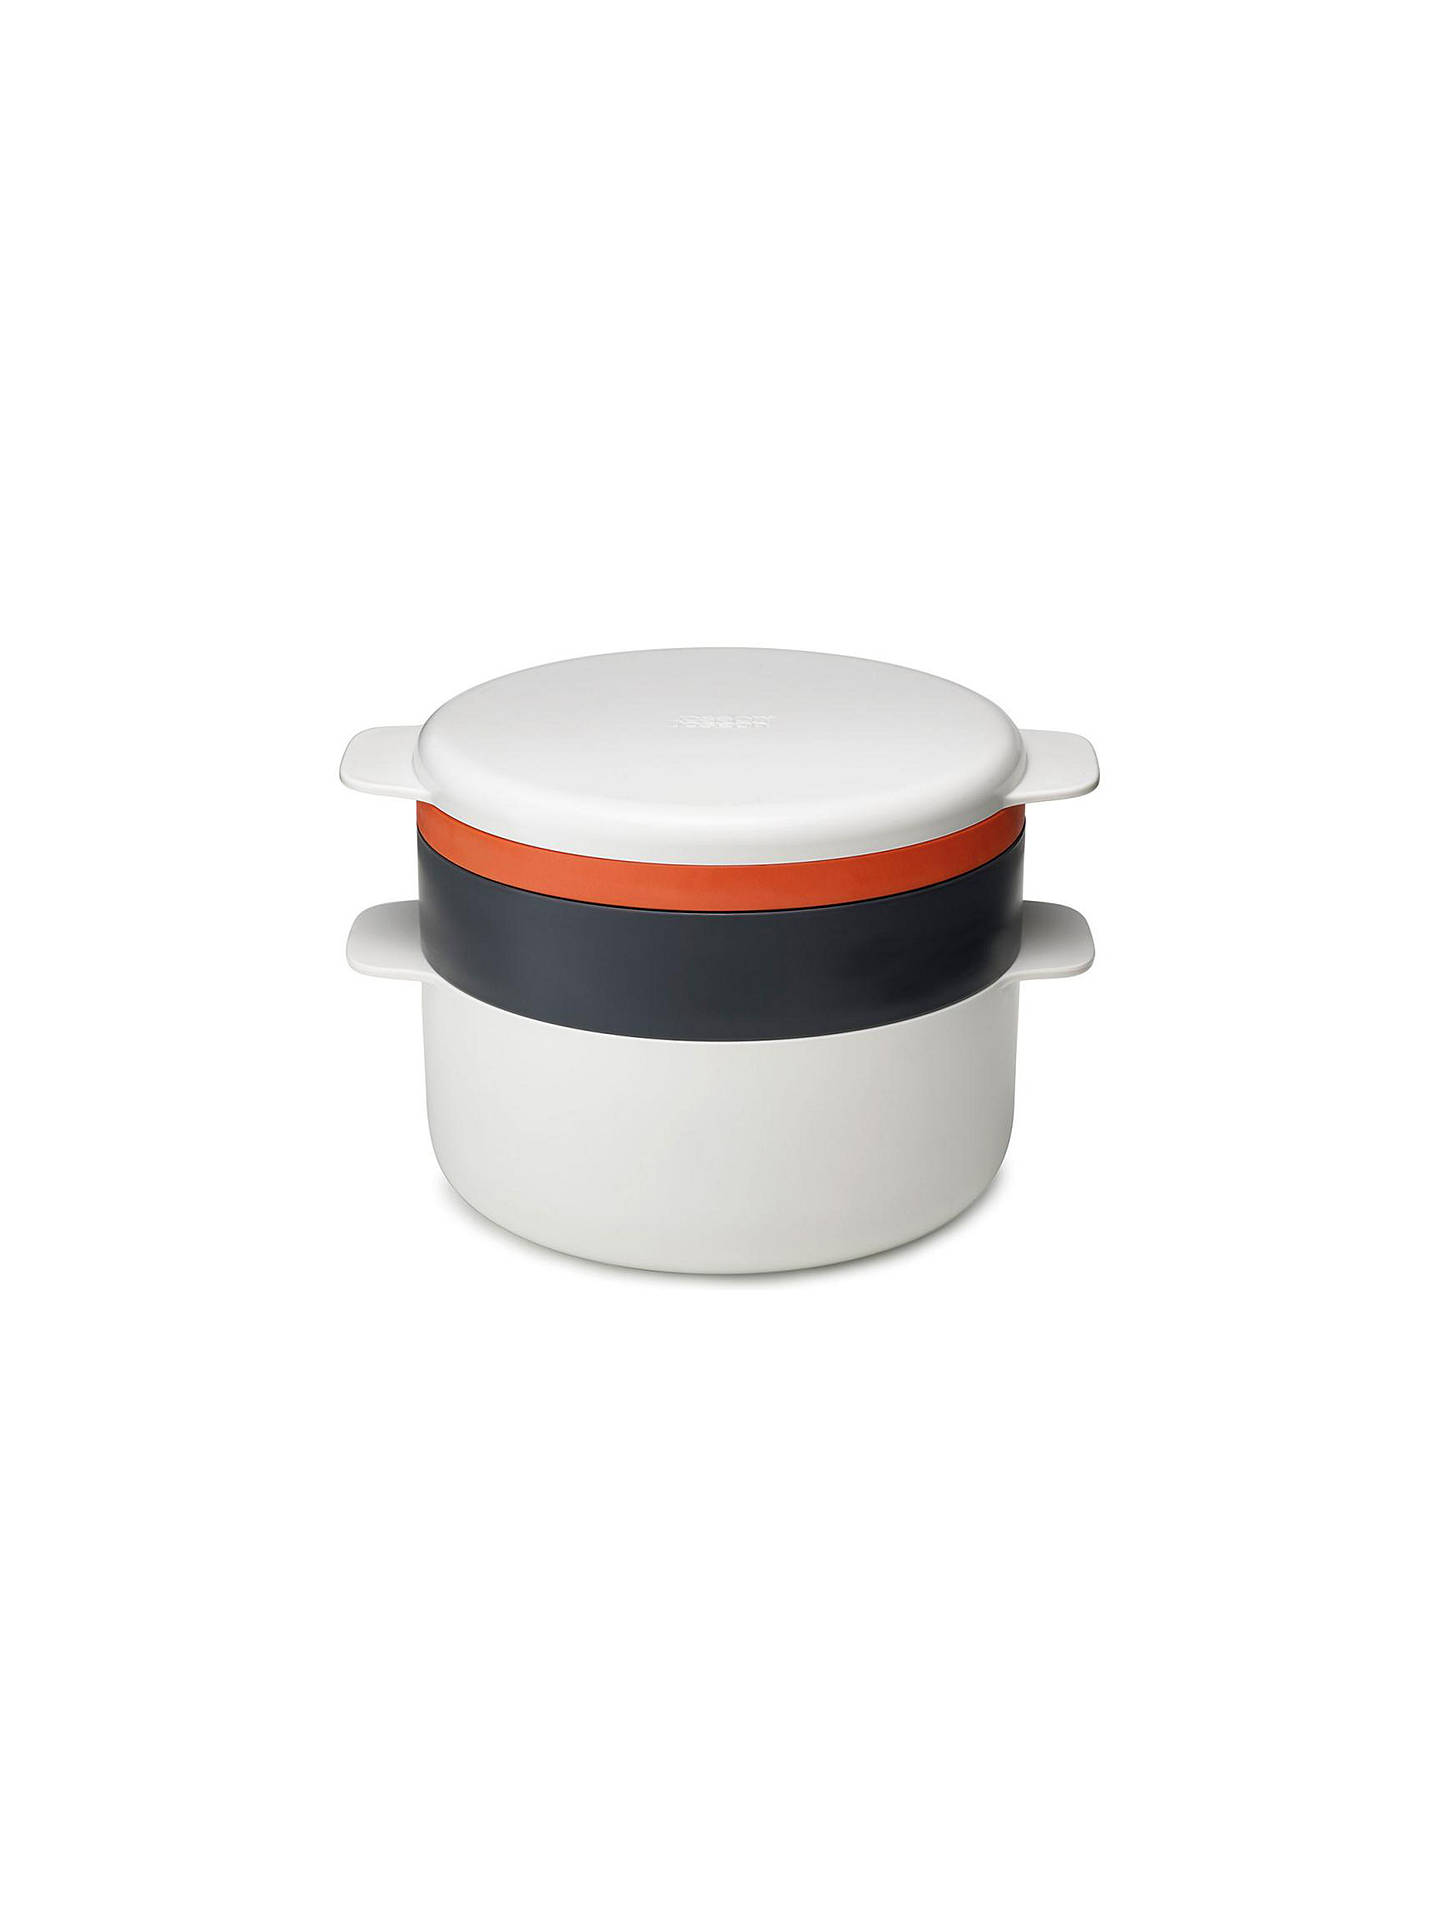 Buy Joseph Joseph M-Cuisine Stackable Microwave Cooking Set, 4 Piece Online at johnlewis.com